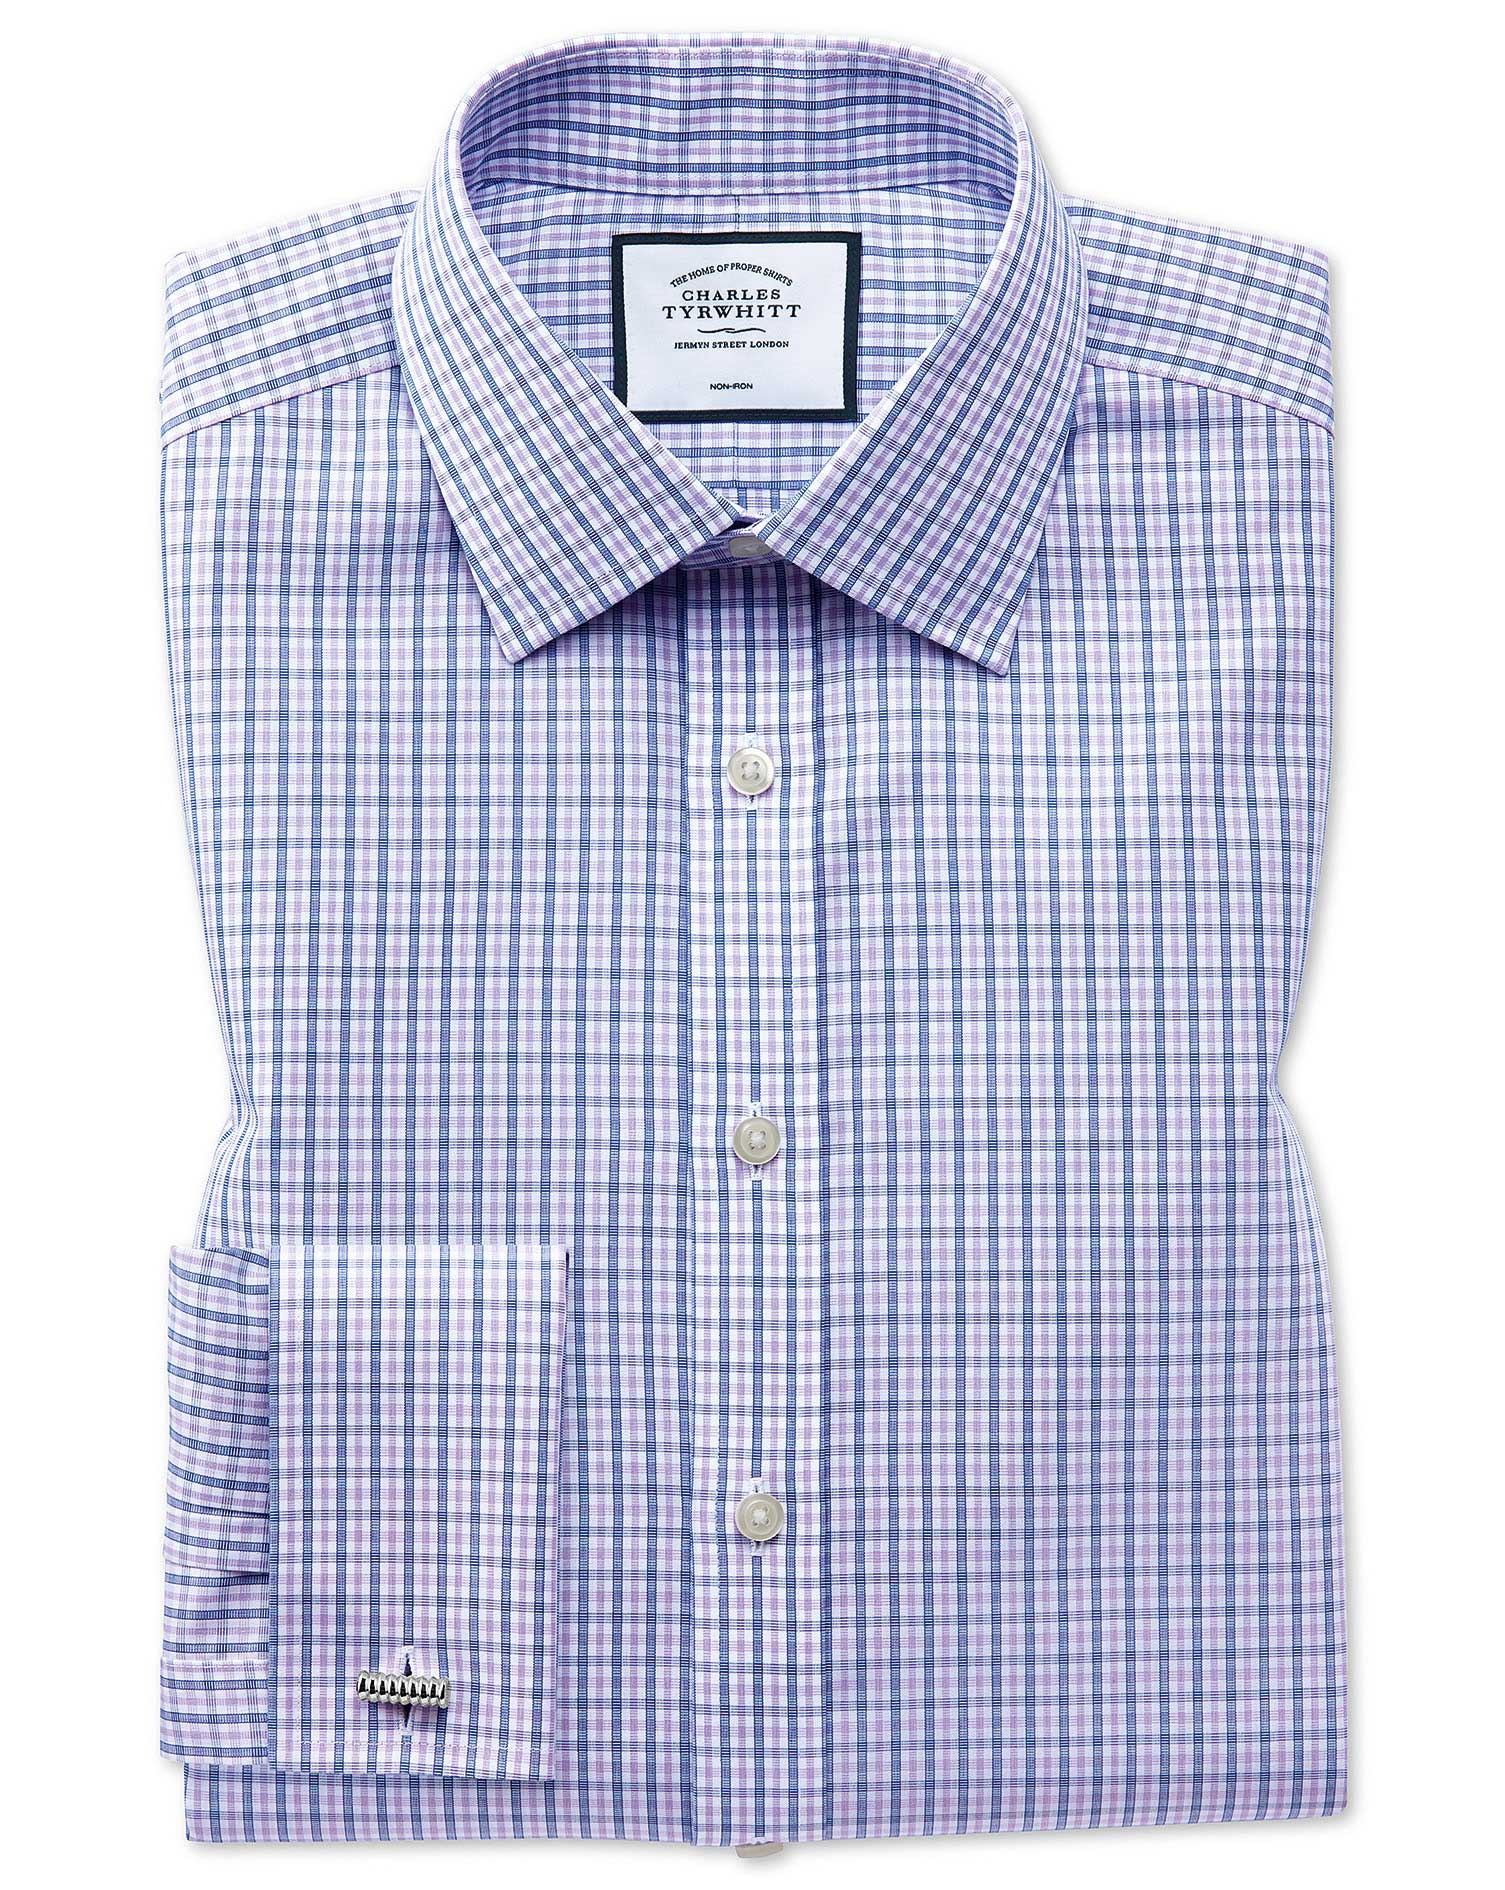 Classic Fit Non-Iron Blue and Purple Check Cotton Formal Shirt Double Cuff Size 18/36 by Charles Tyr